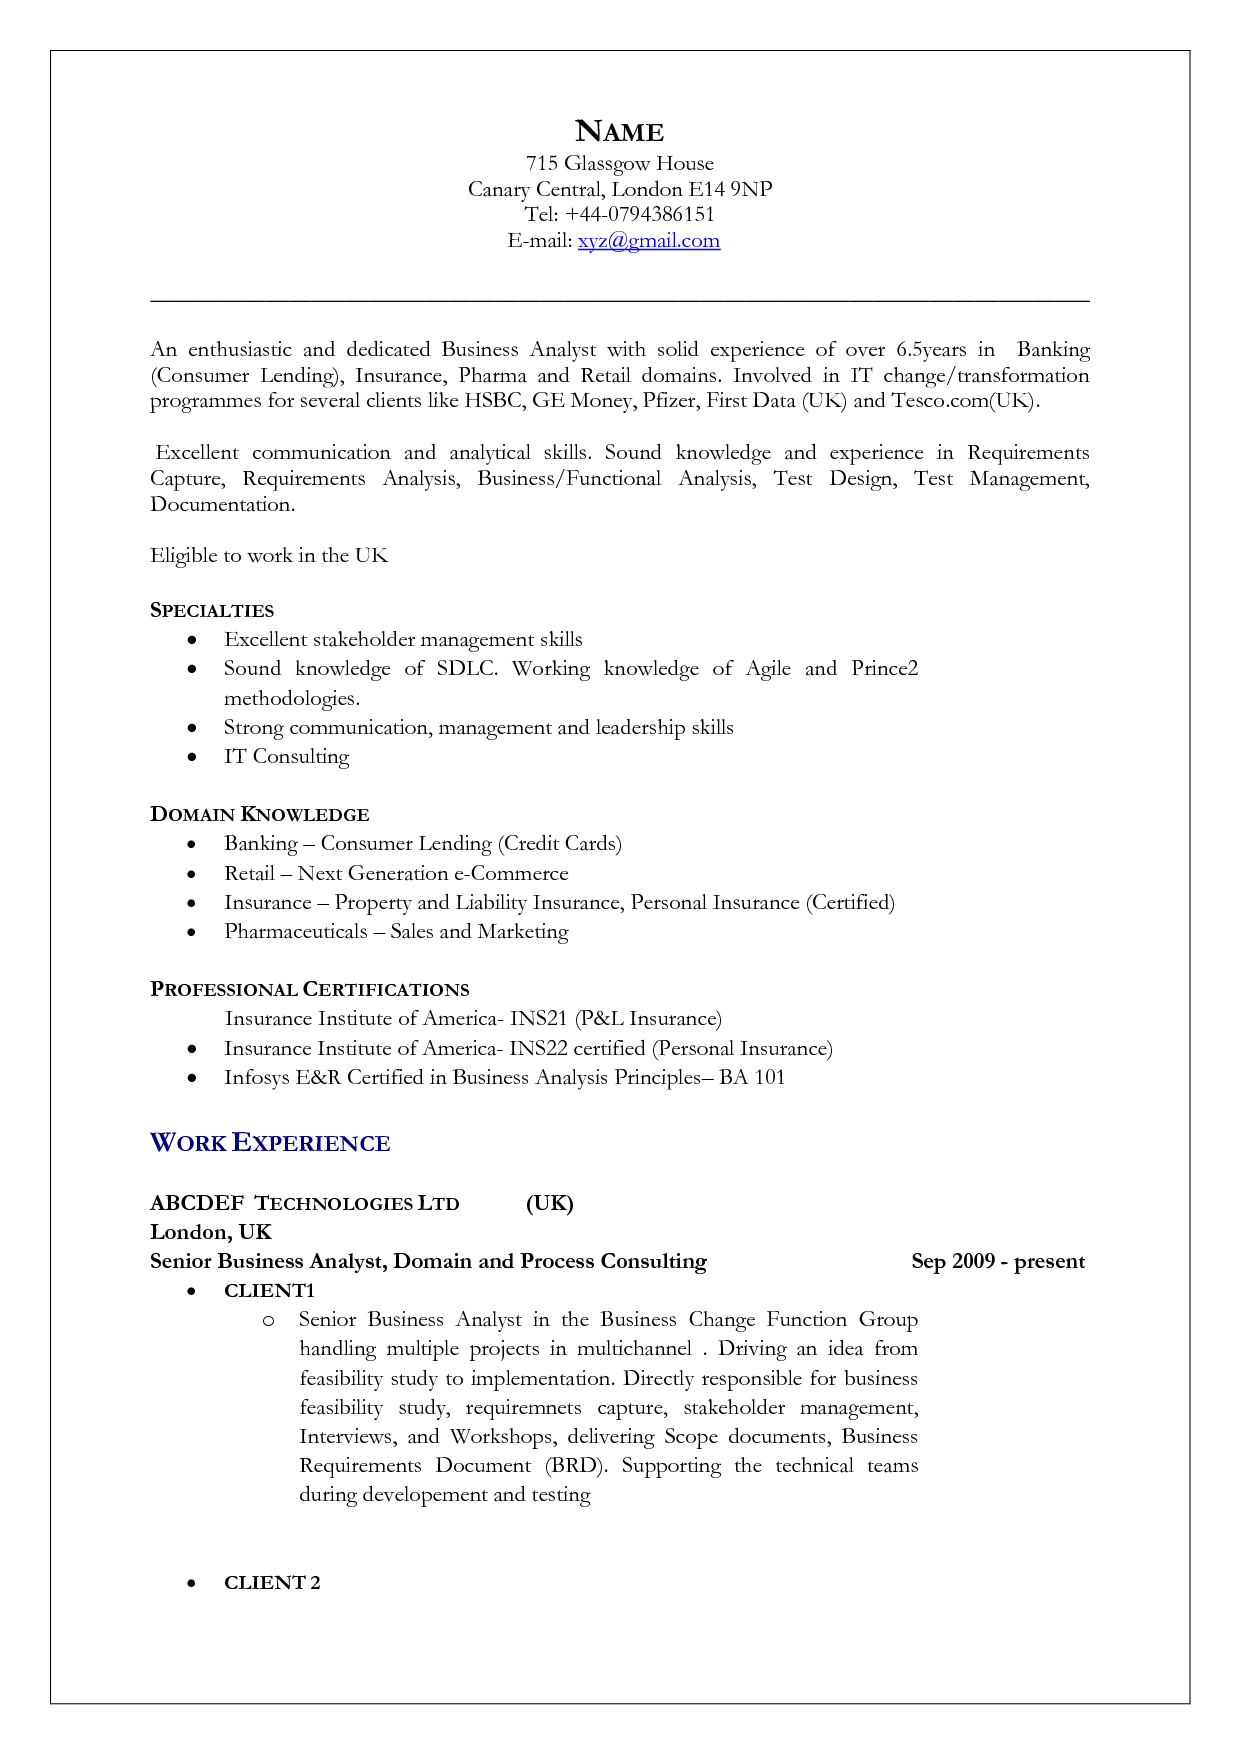 Resume Templates United Kingdom Resume Templates In 2020